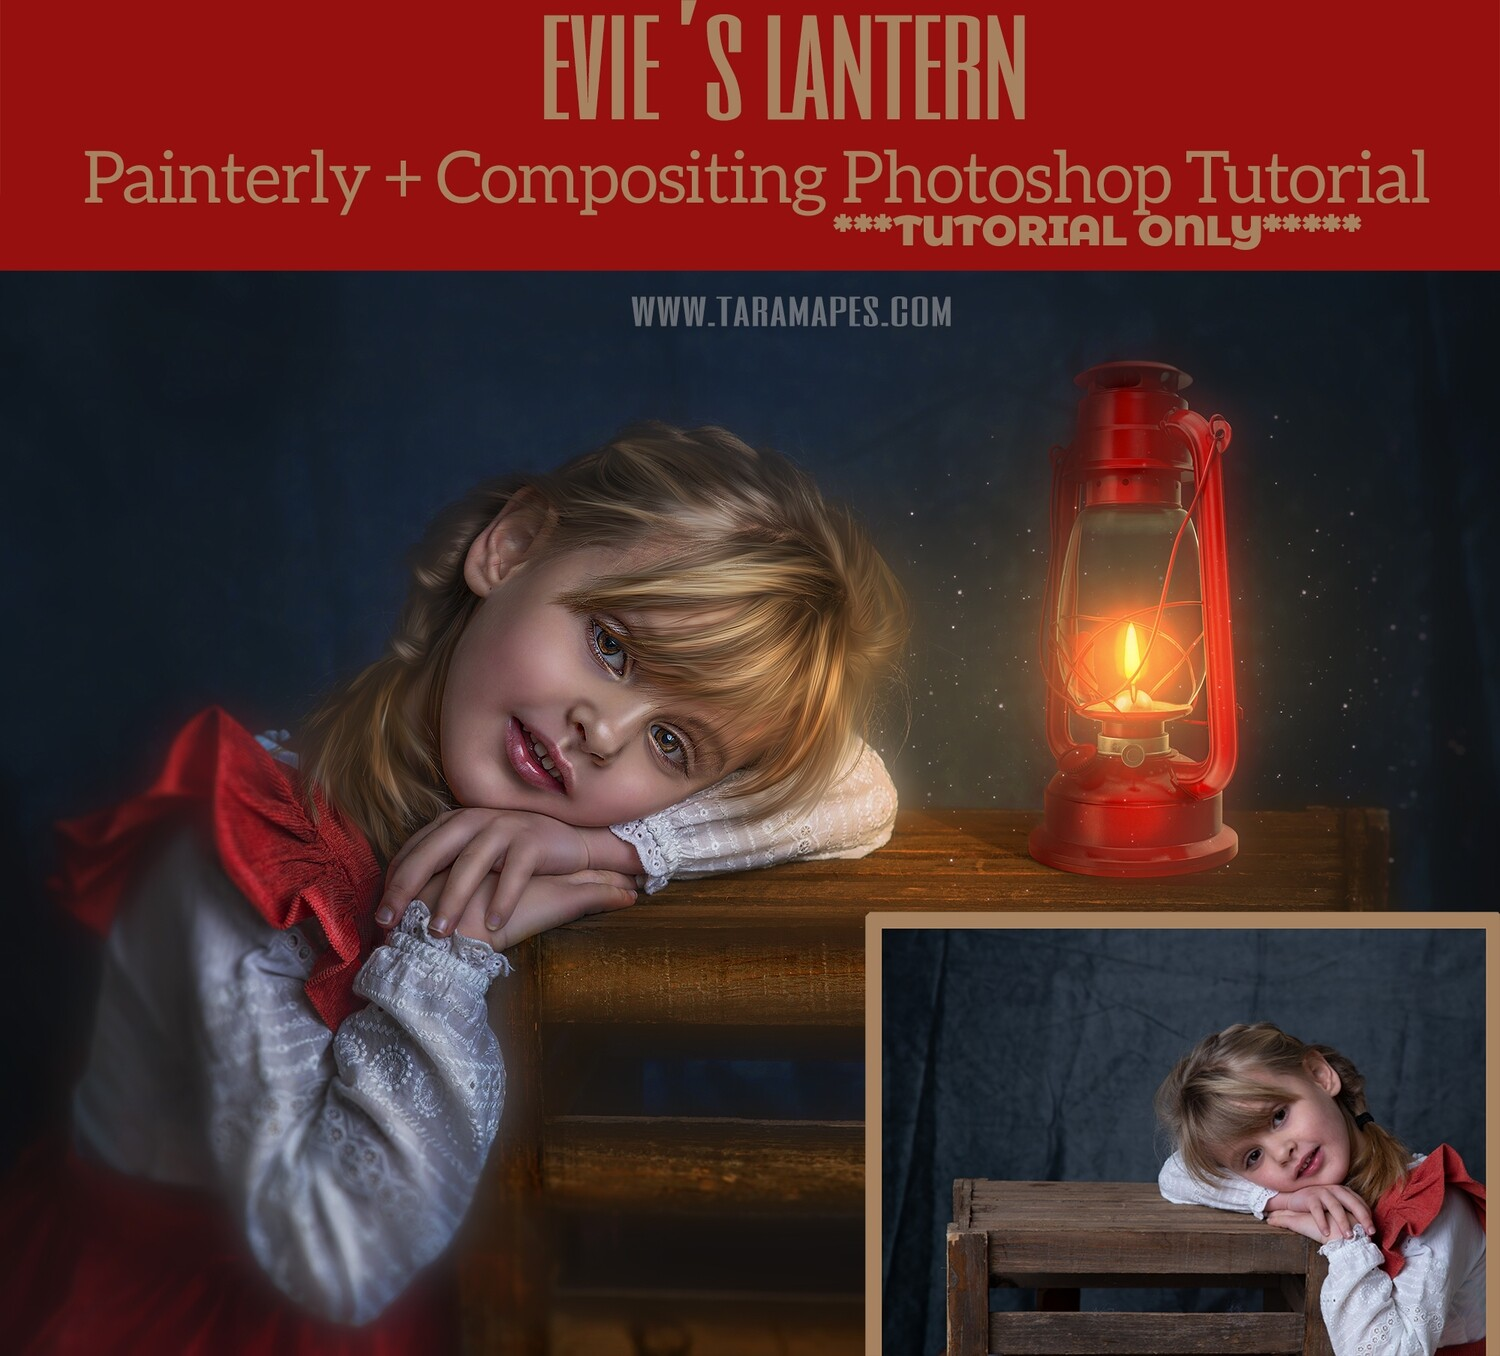 Evie's Lantern Fine Art Painterly and Compositing Photoshop Tutorial TUTORIAL ONLY- Fine Art Tutorial by Tara Mapes